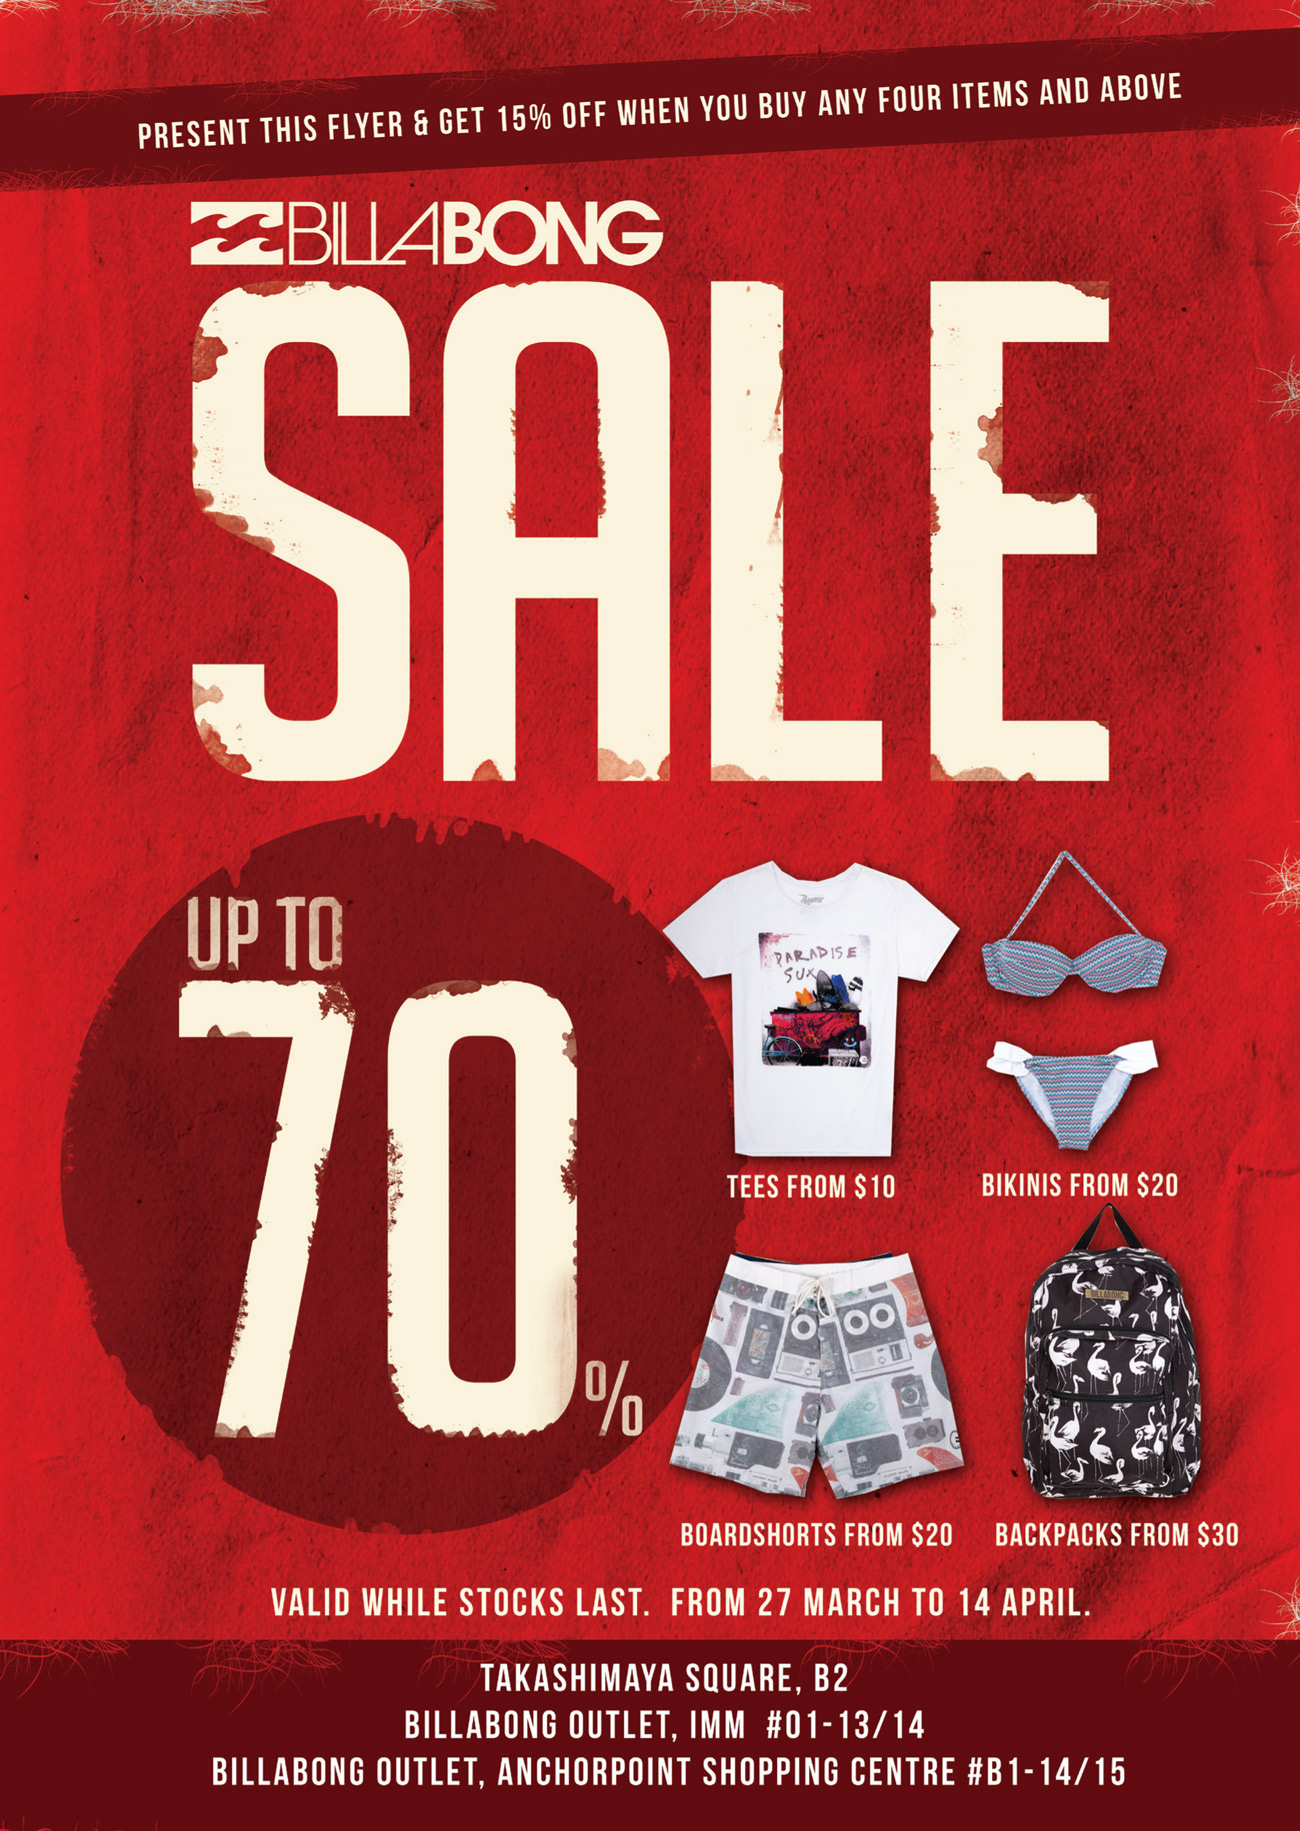 Billabong Sale, Additional 15% Discounts On 4 Items Up